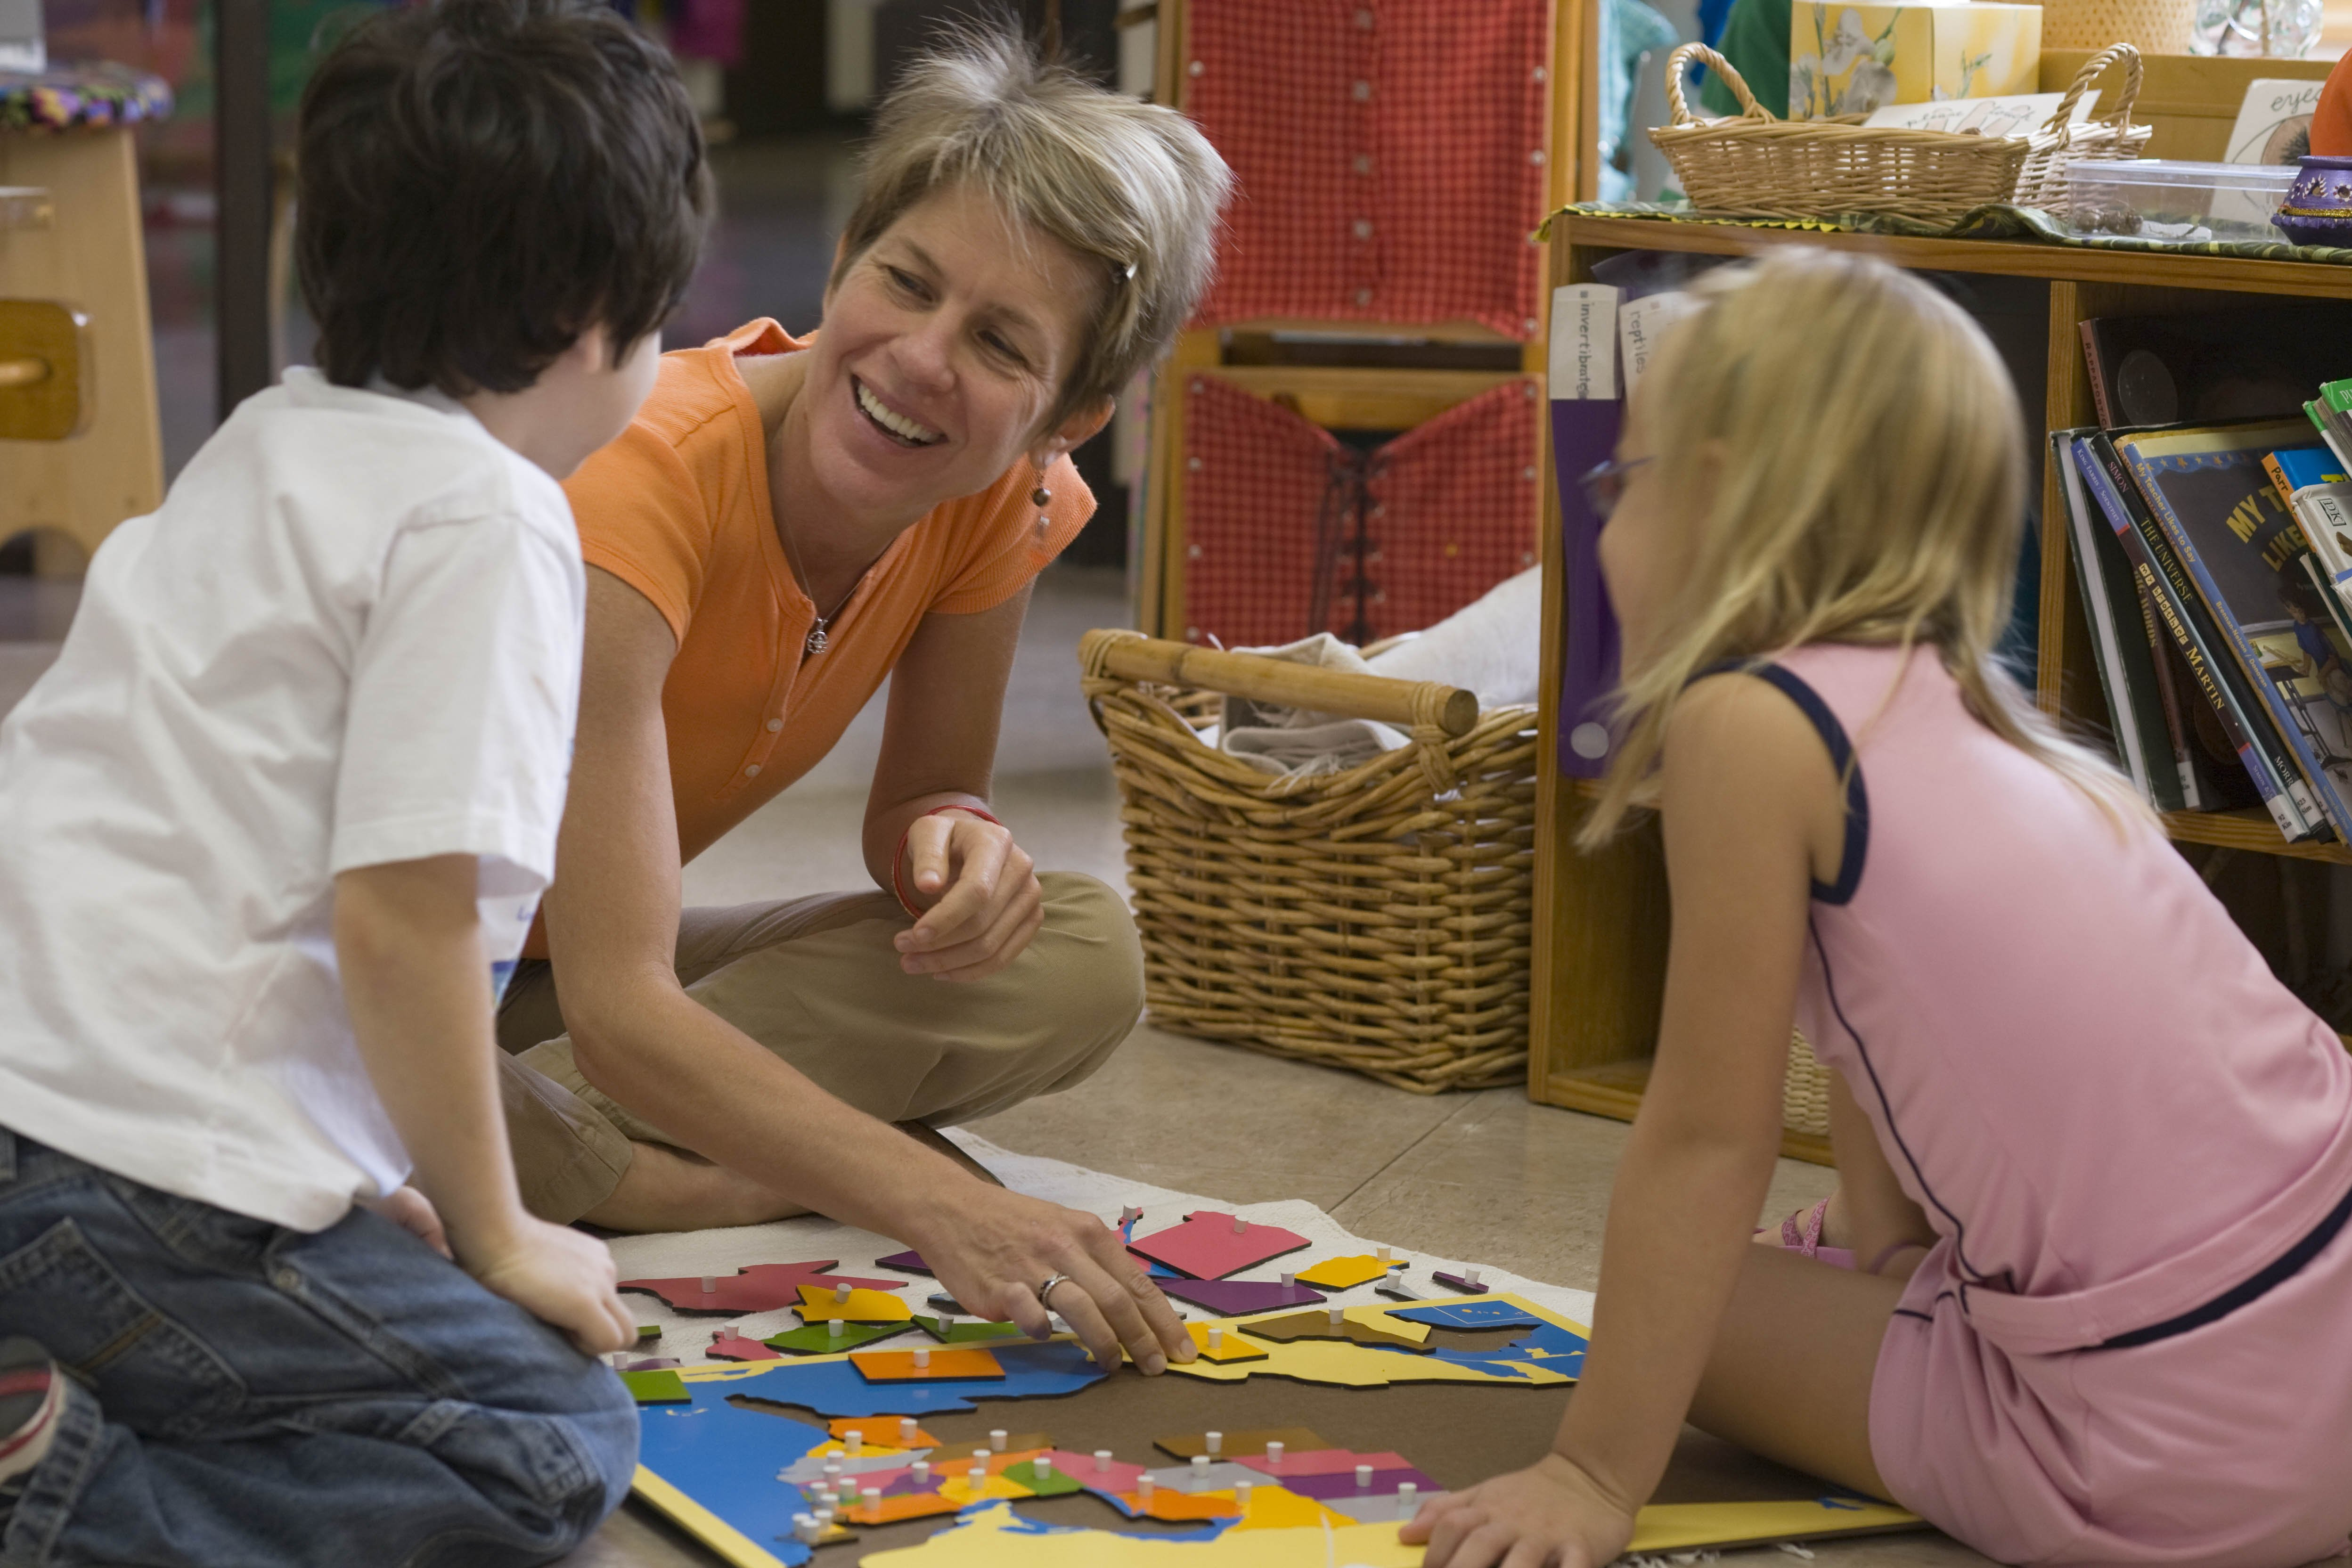 montessori method in developing childrens creativity Learn about children's manor montessori school  creativity, and critical maria montessori's method of education focused on the development of the whole.